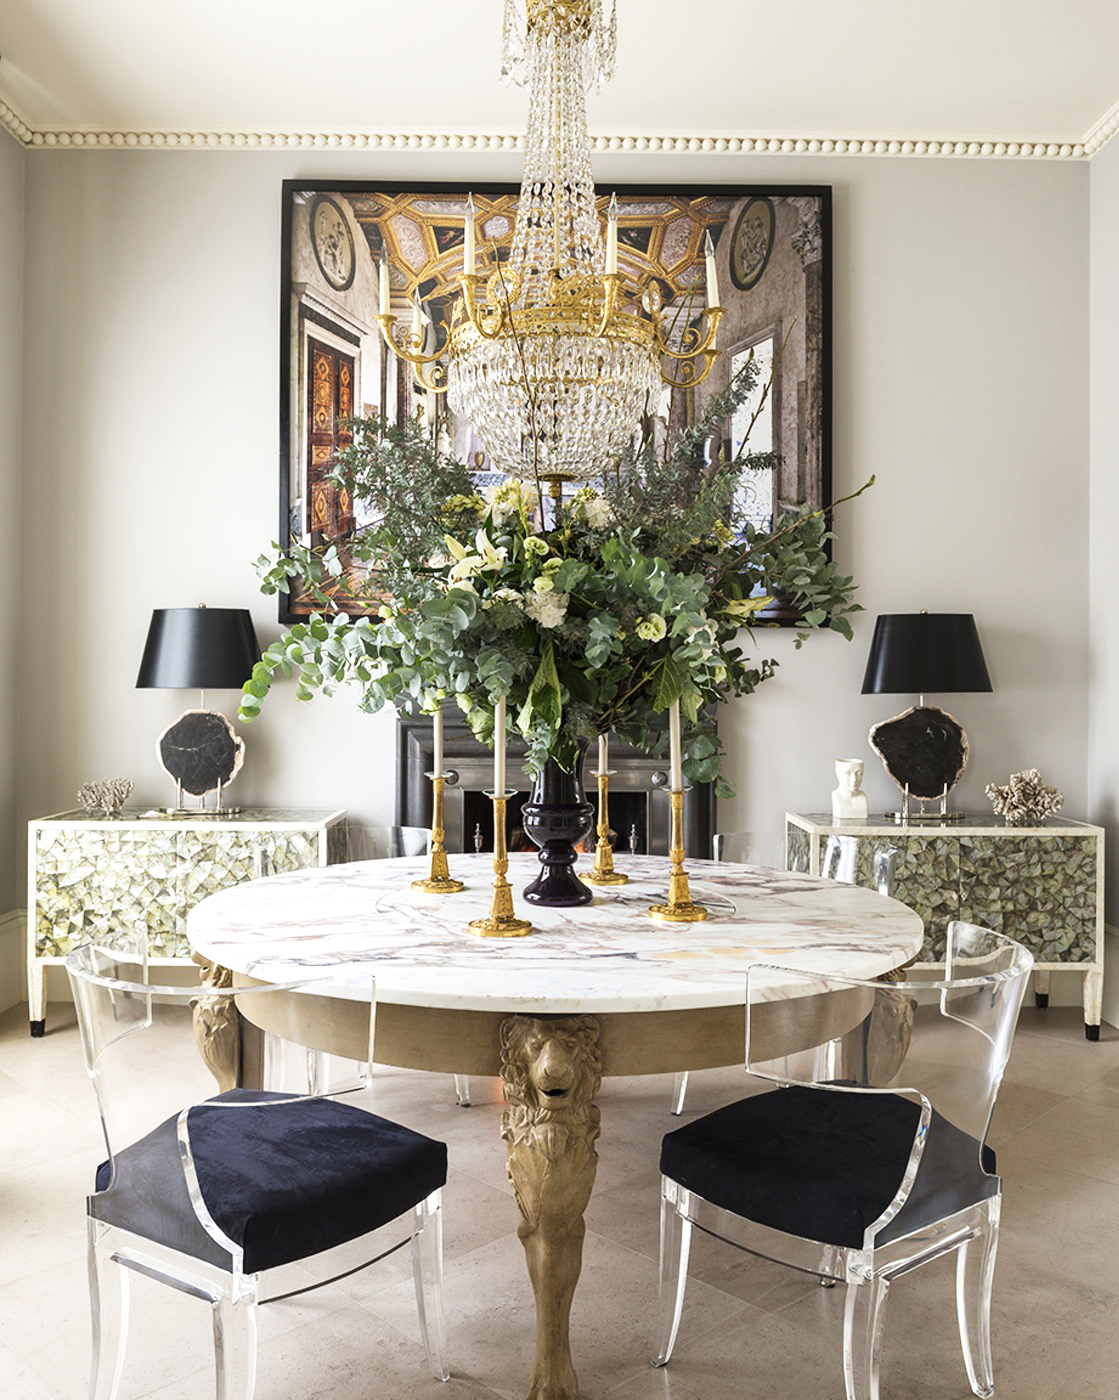 Table Decor And More Impeccable Style Get The Designer Look In Your Home With